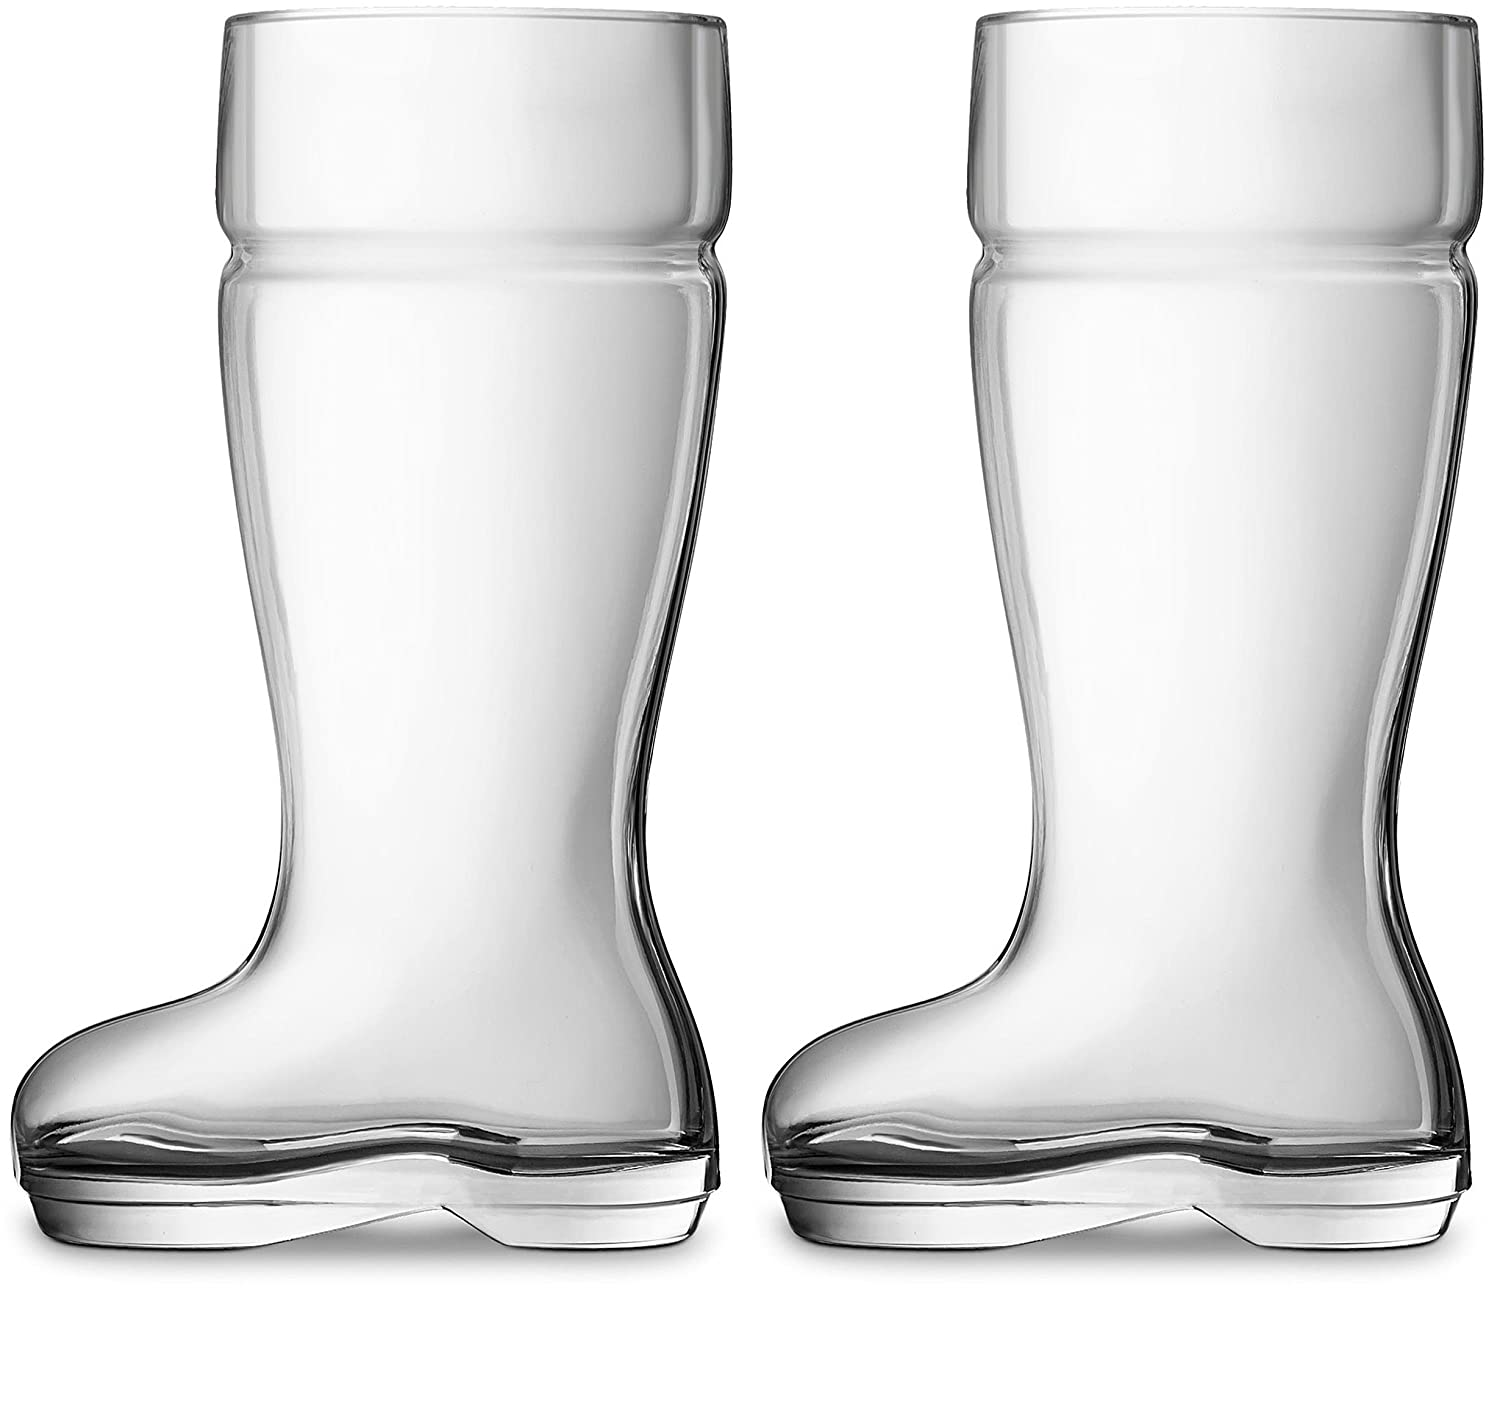 3d2bdd22c332 Circleware Das Boot Set of 2 Glass Beer Glasses Drinking Mugs